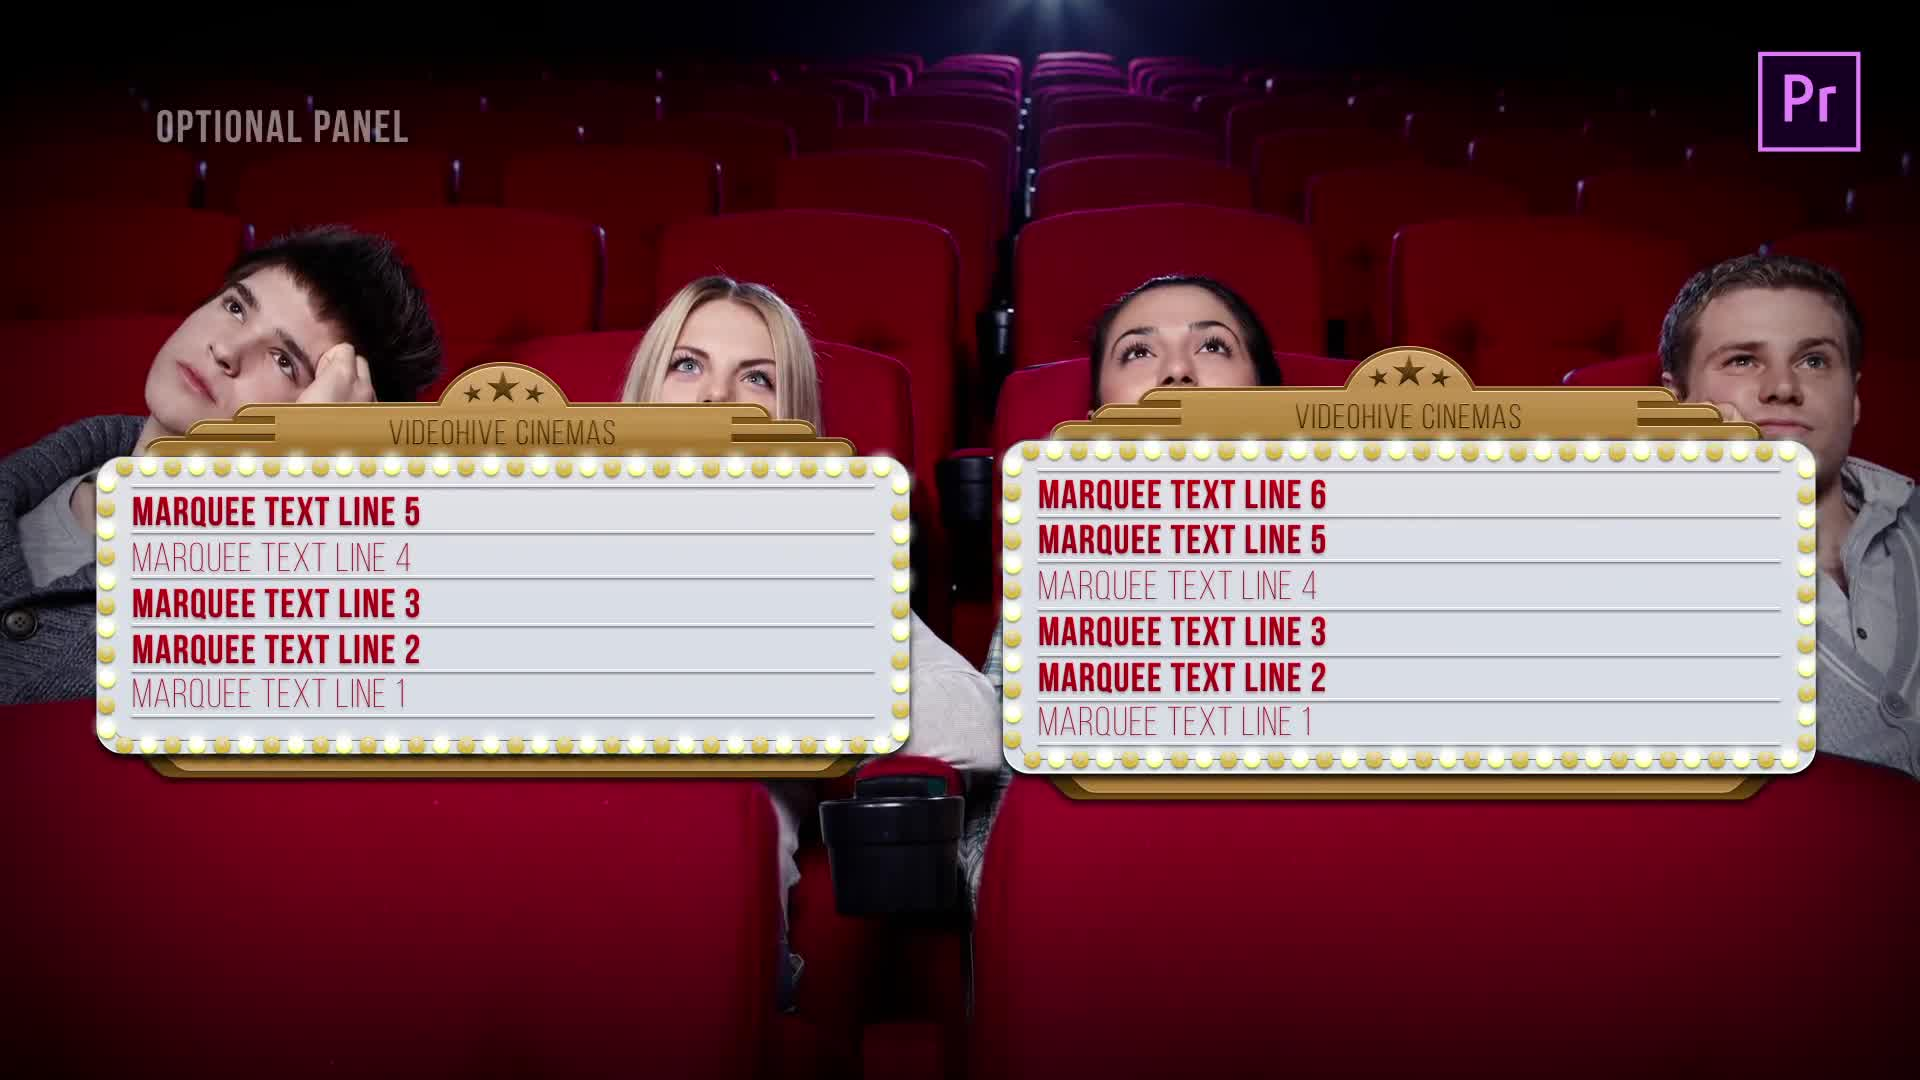 Marquee Lights Titles & Lower Thirds | MOGRT for Premiere Pro Videohive 24552539 Premiere Pro Image 8